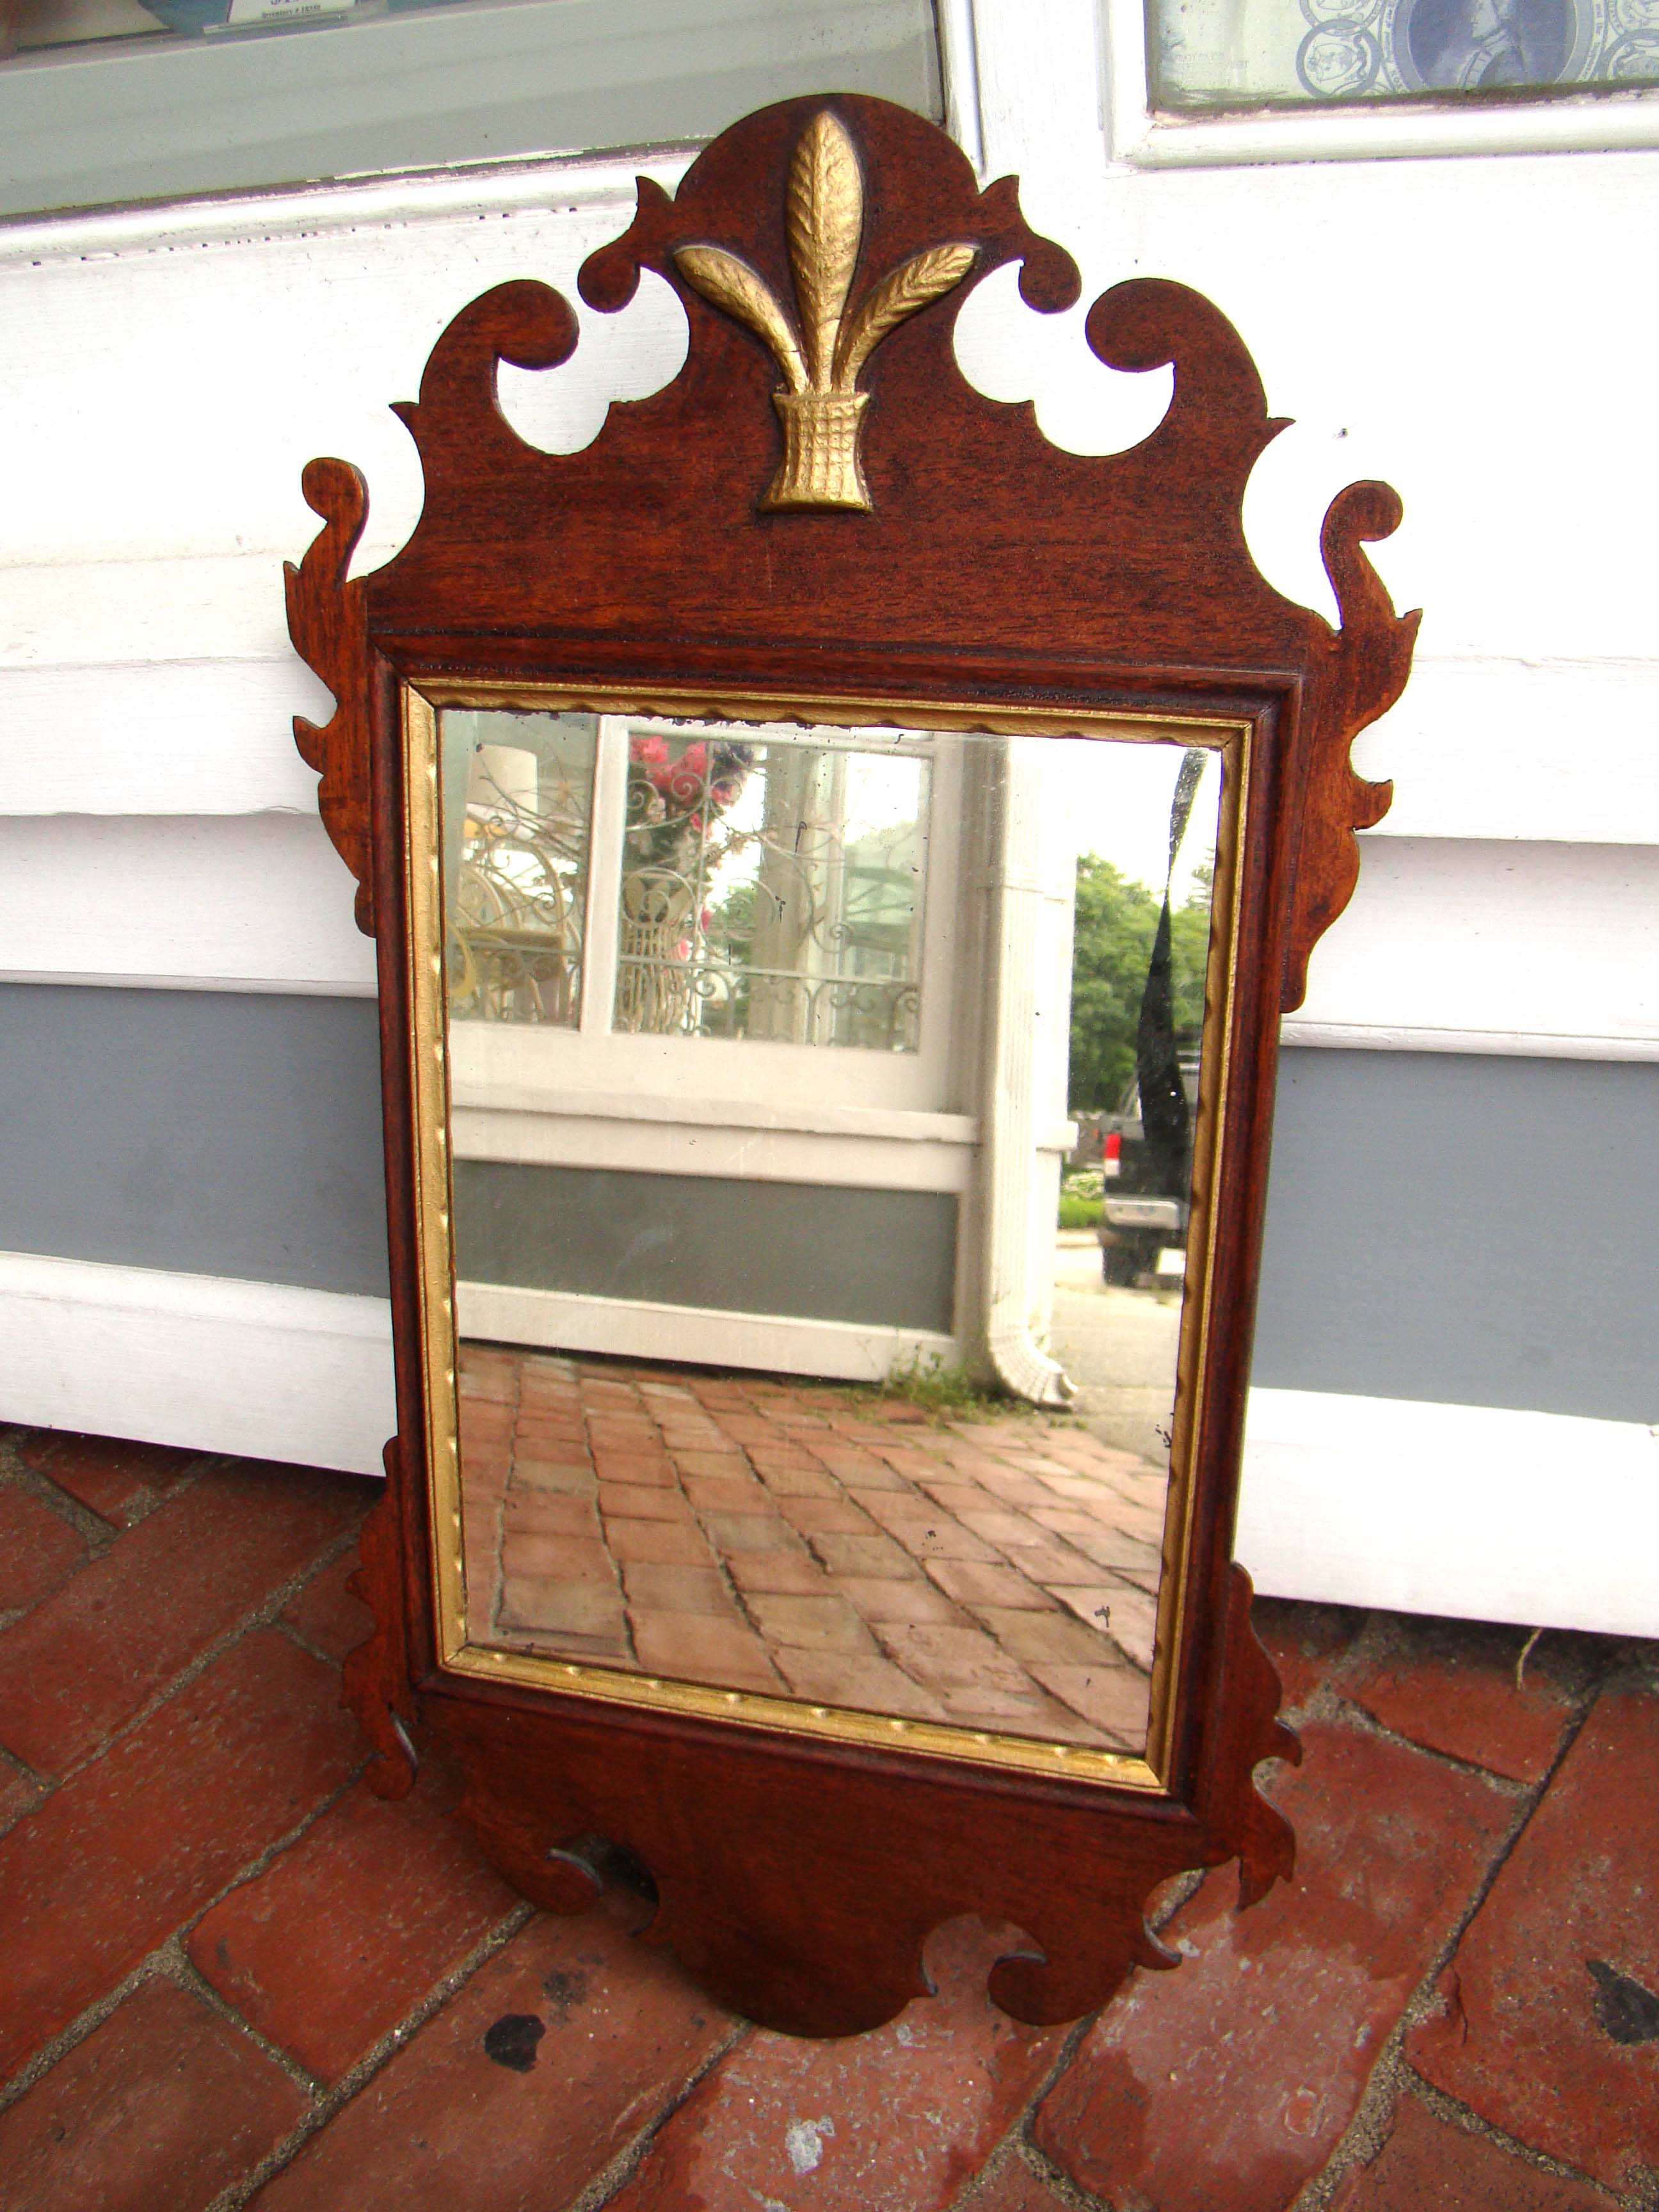 click to view larger image of A fine historic American Chippendale style mirror circa 1790